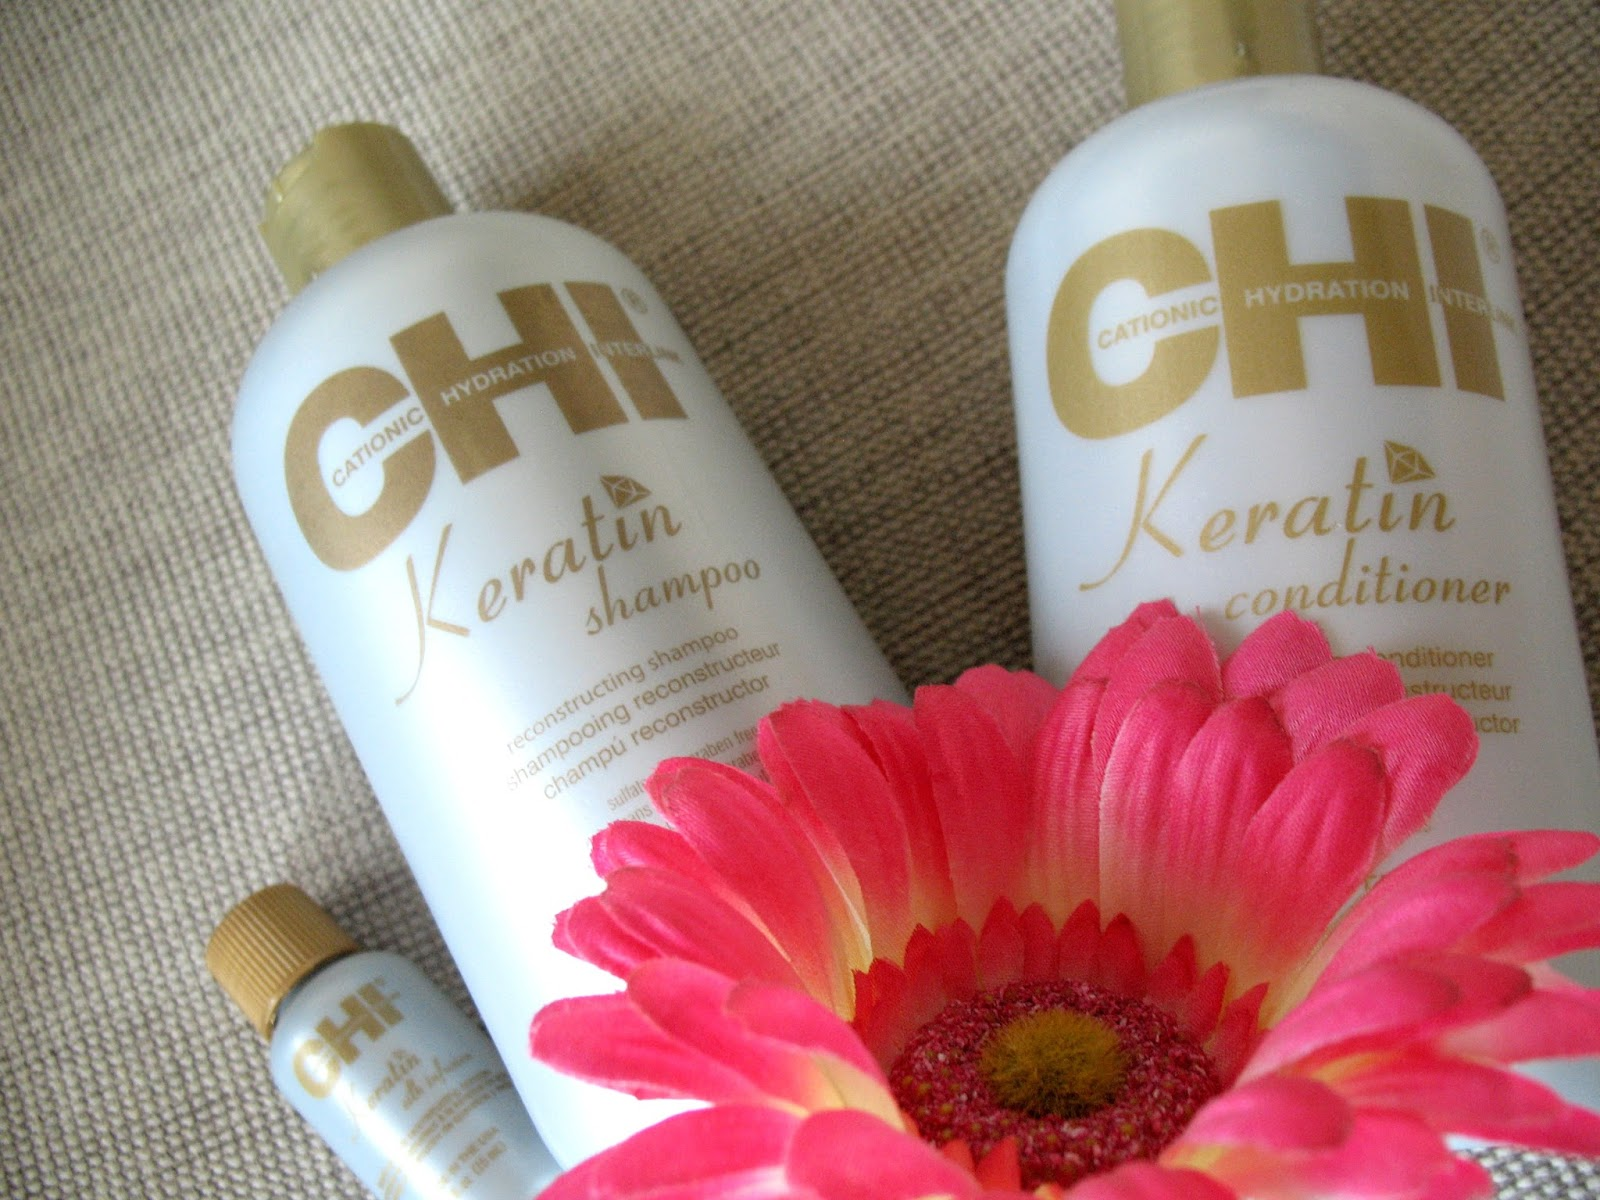 CHI_keratin_review_beauty_blog_01